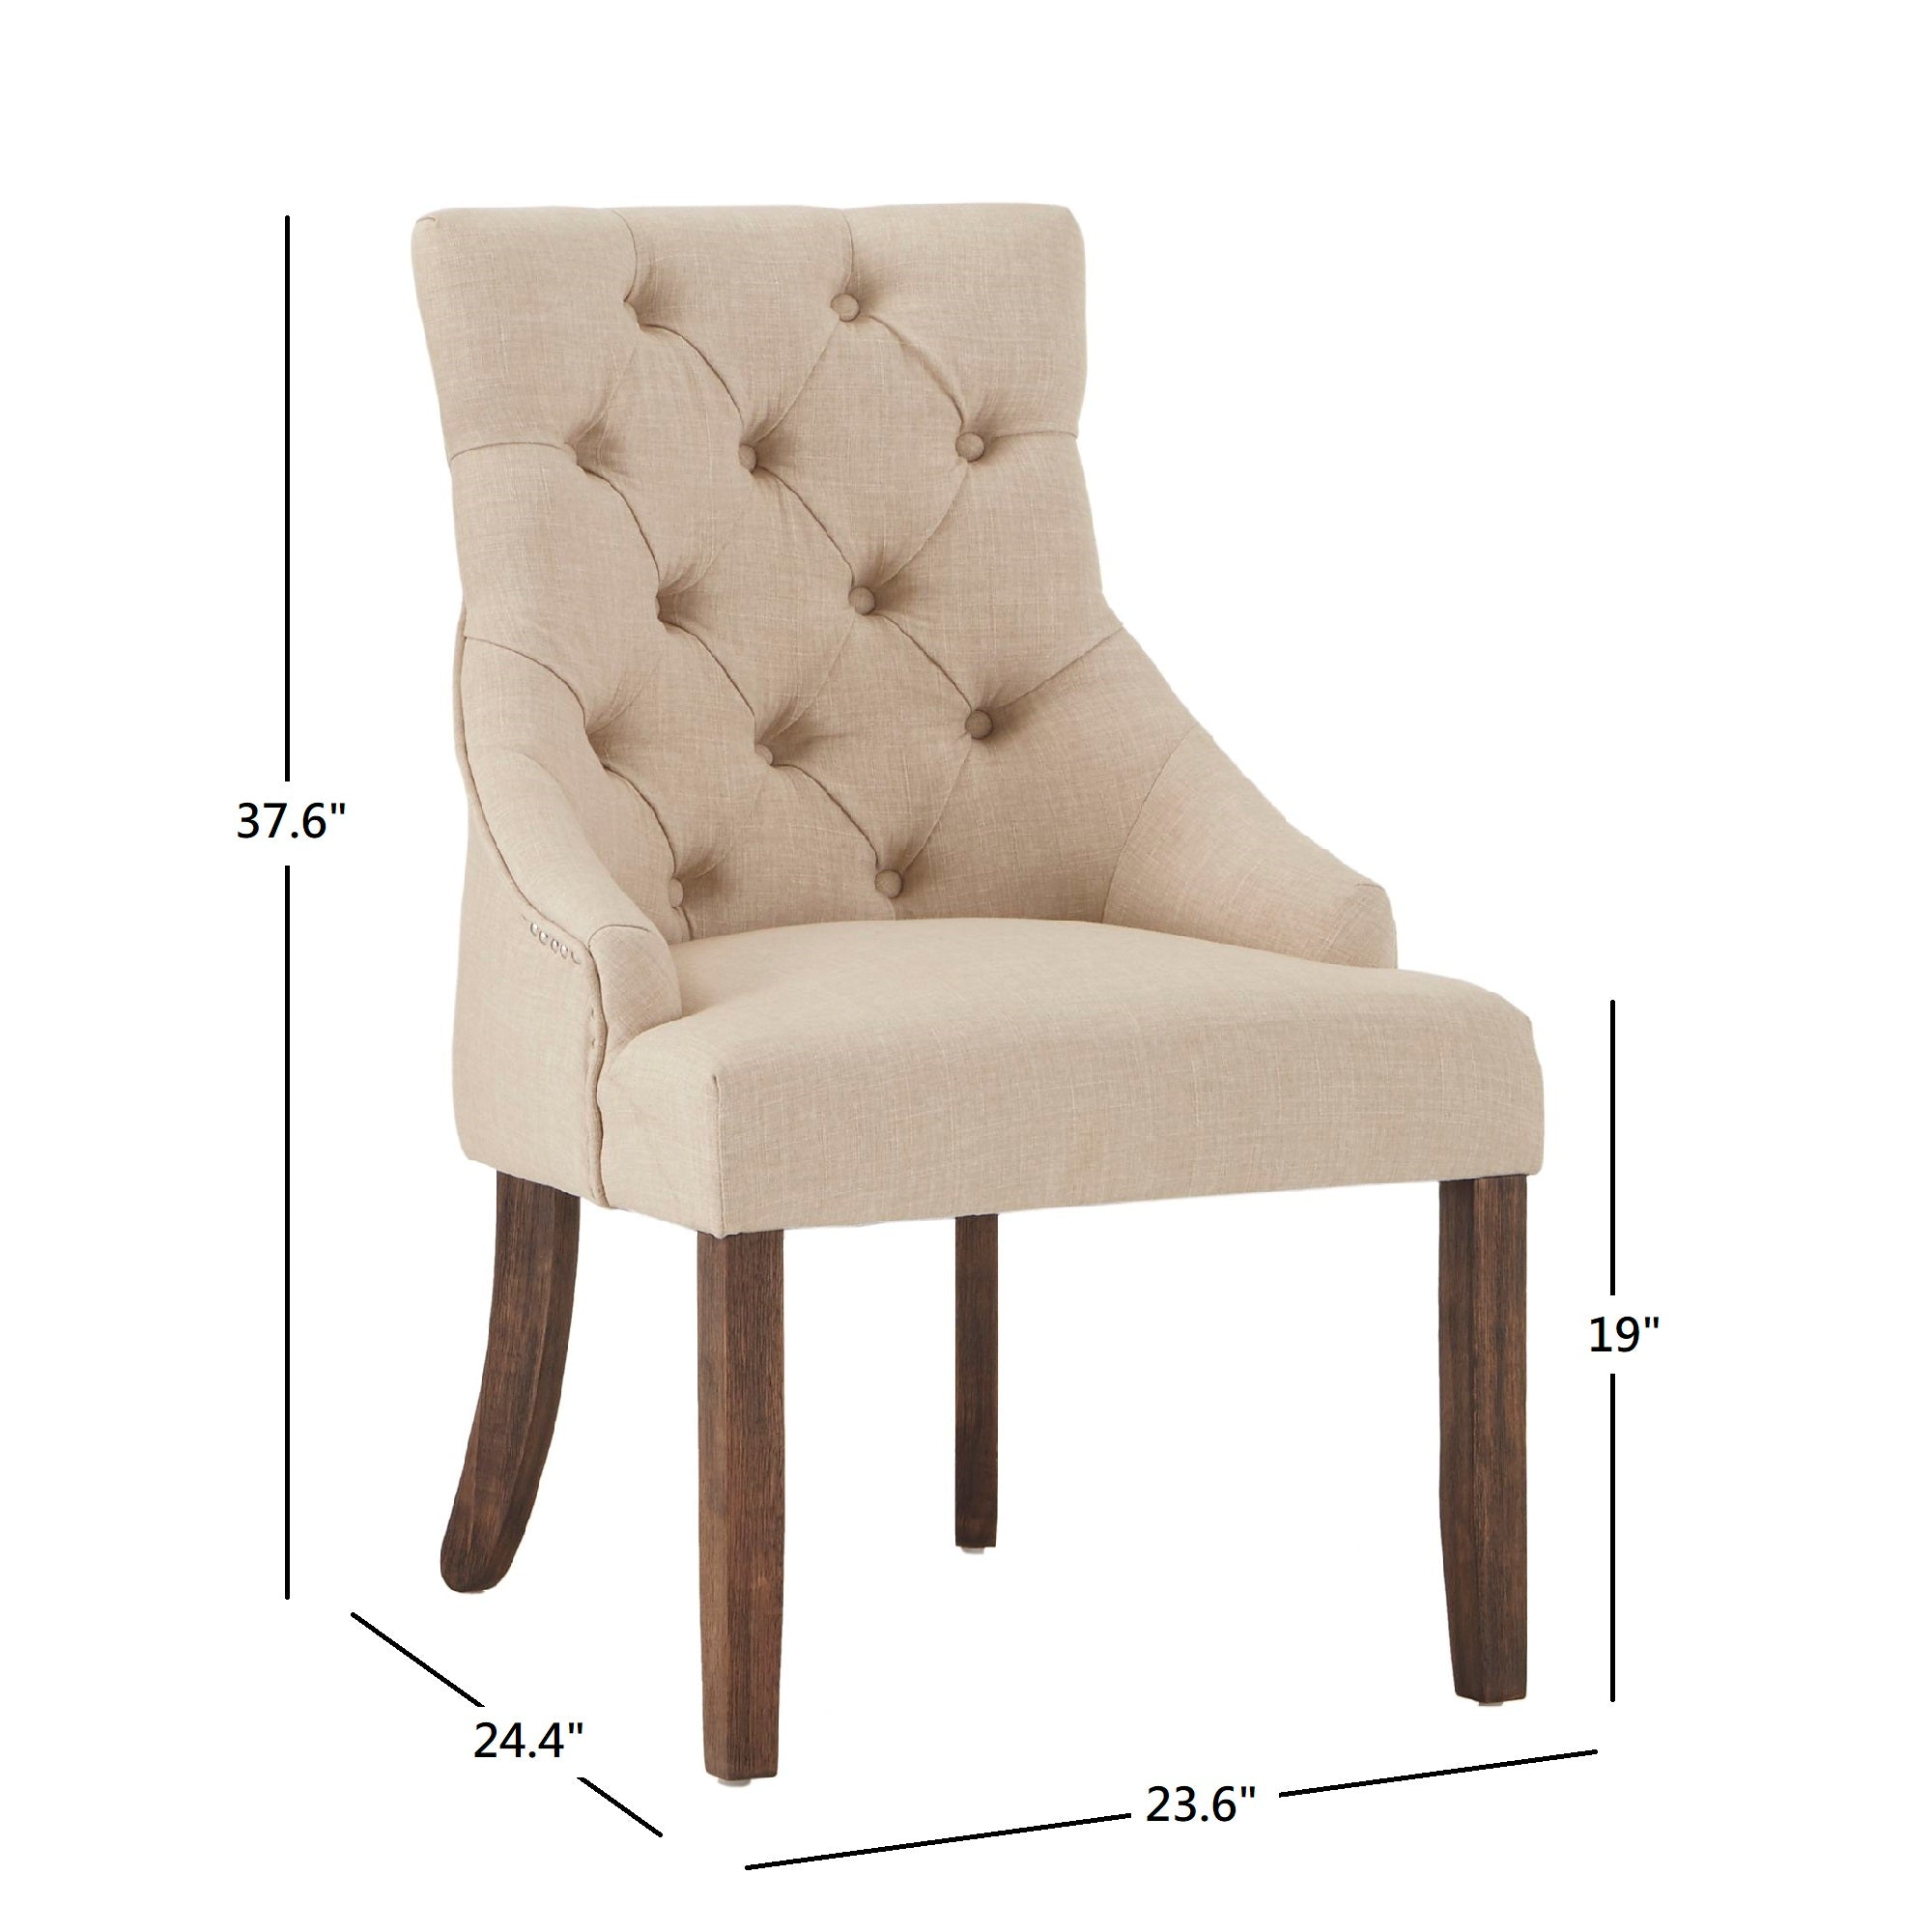 Linen Curved Back Tufted Dining Chair (Set of Two) - Beige Linen